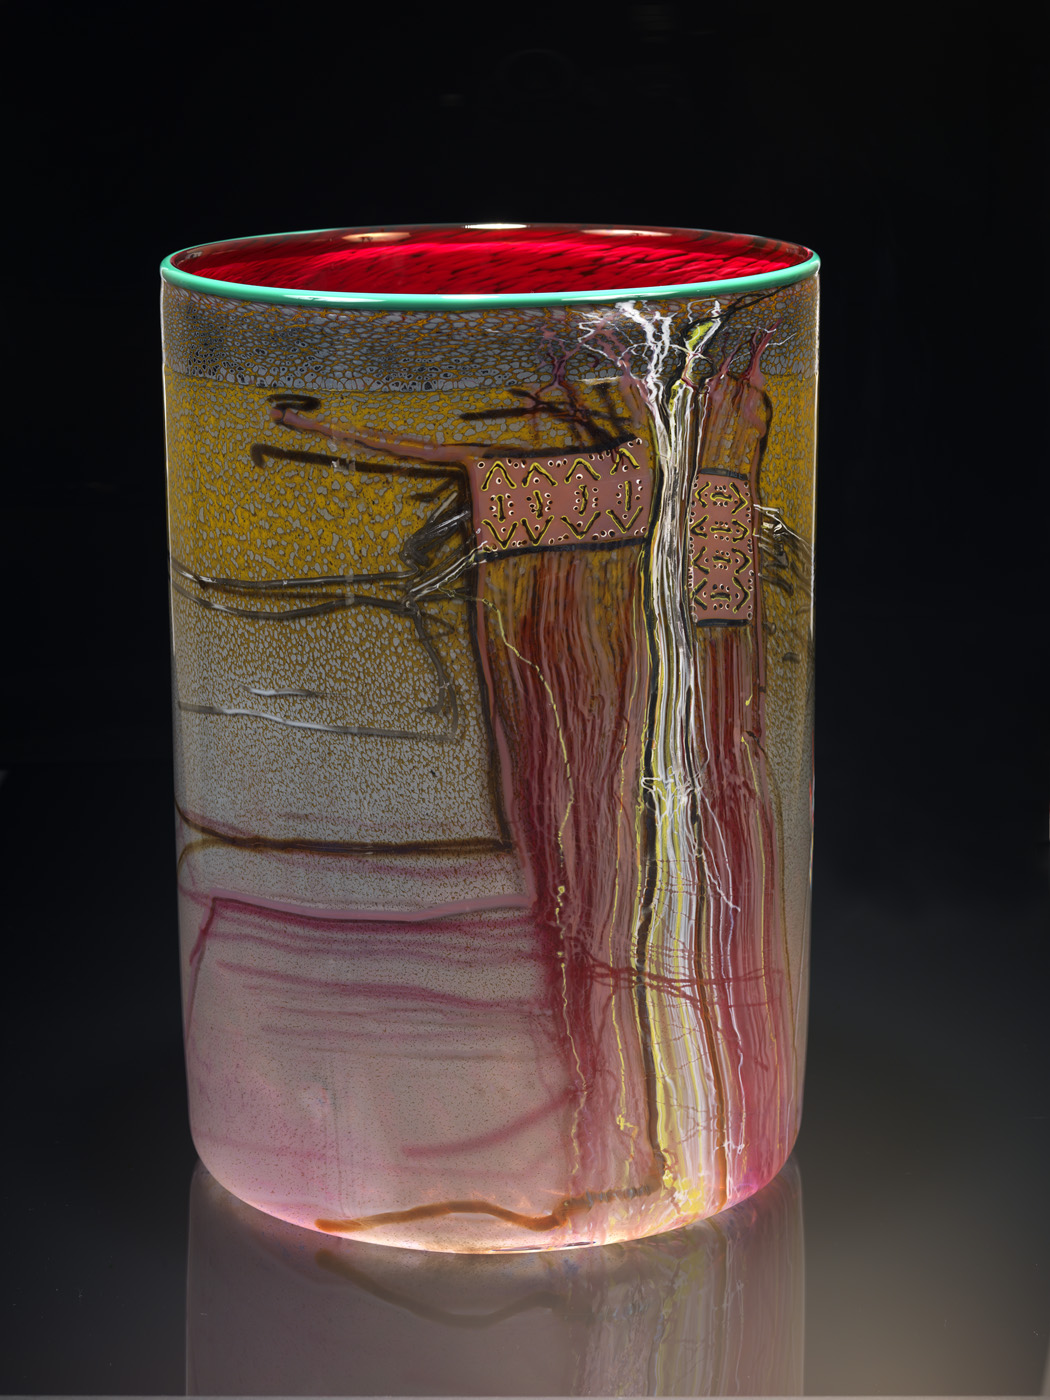 Blanket Cylinder Series, Dale Chihuly, 1984.